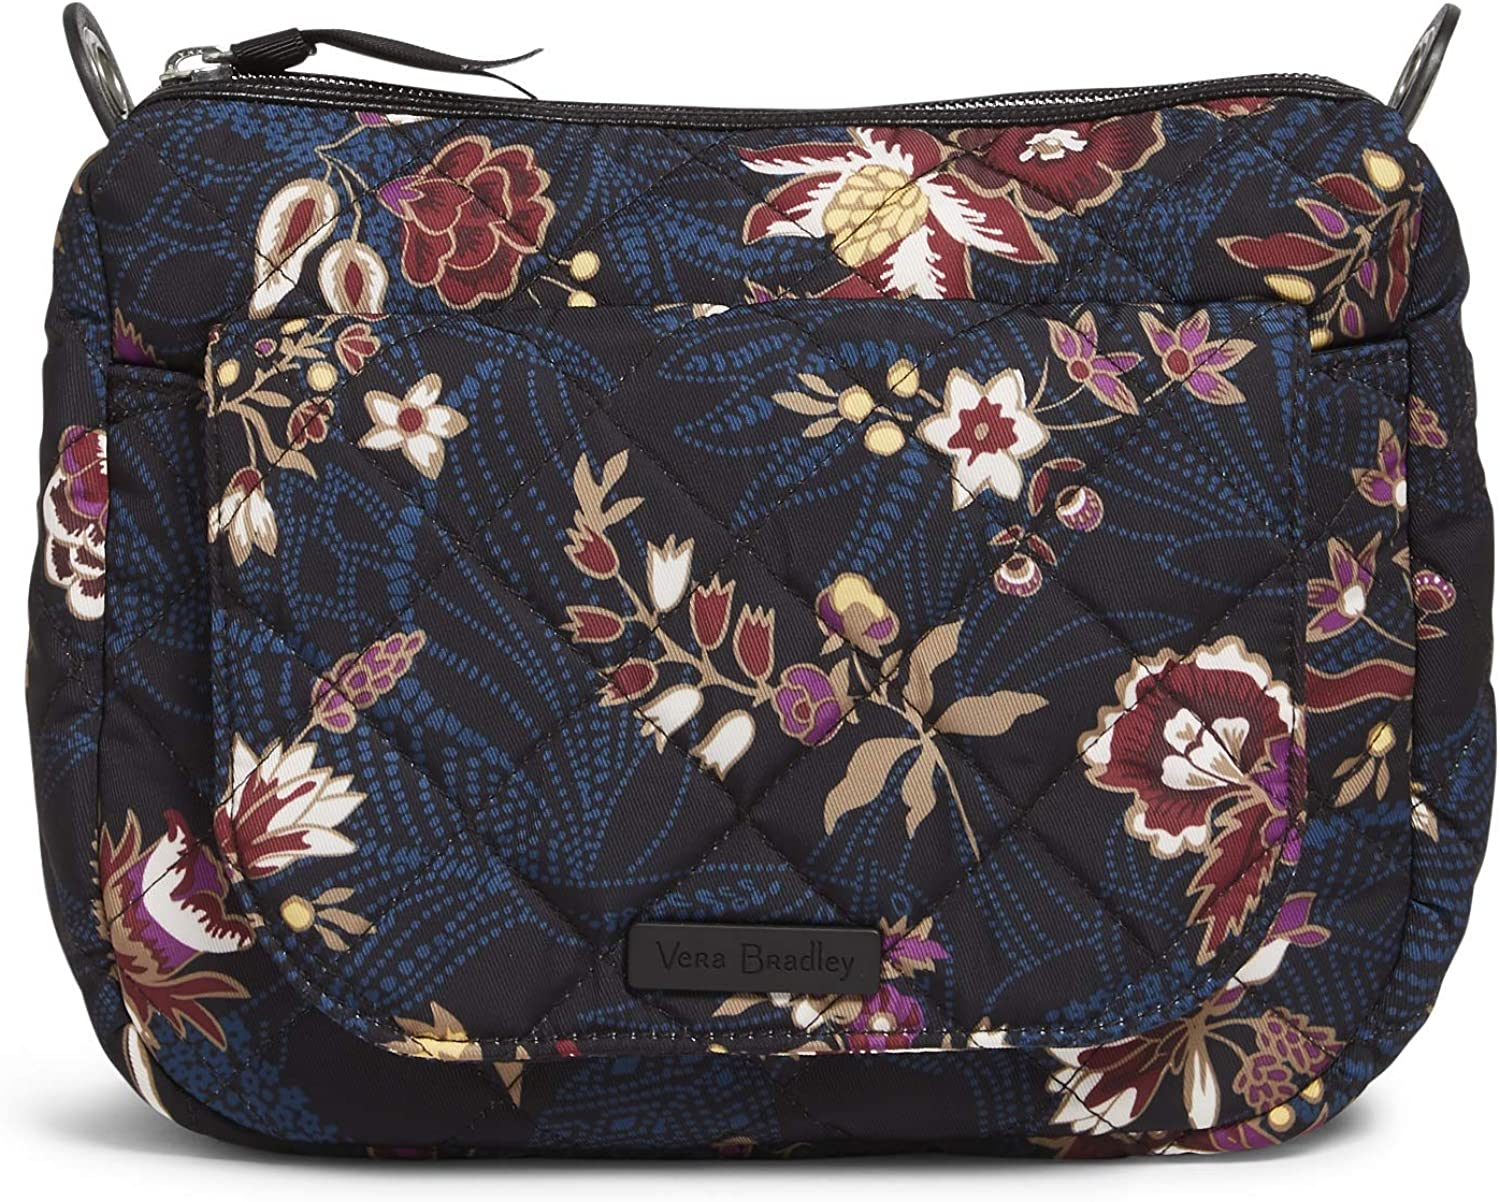 Vera Bradley Performance Twill Carson Mini Shoulder Bag Crossbody Purse